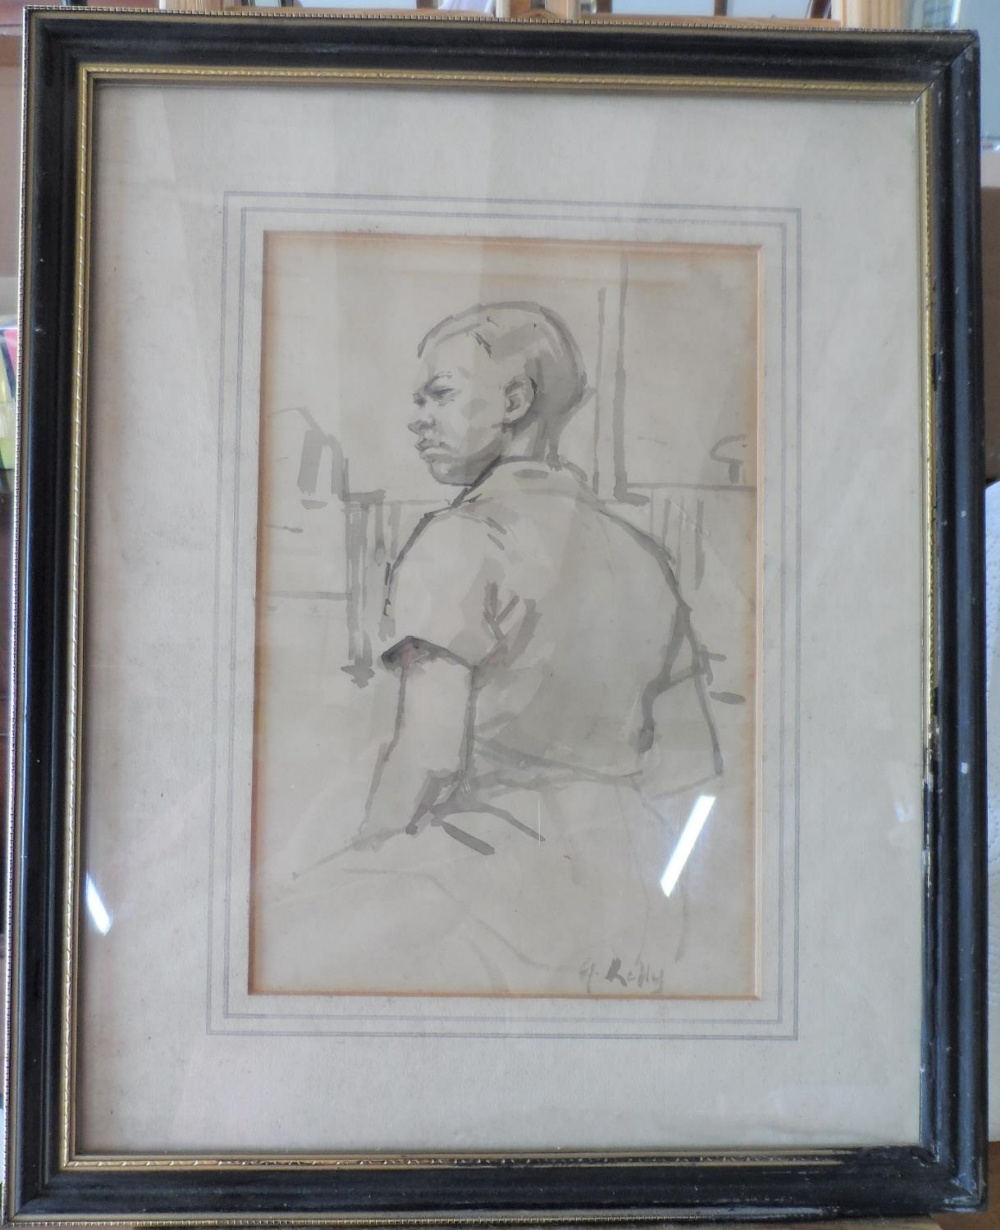 G Kelly grey watercolour wash portrait of a young boy, framed, The w/c measures 25 x 16 cm - Image 2 of 3